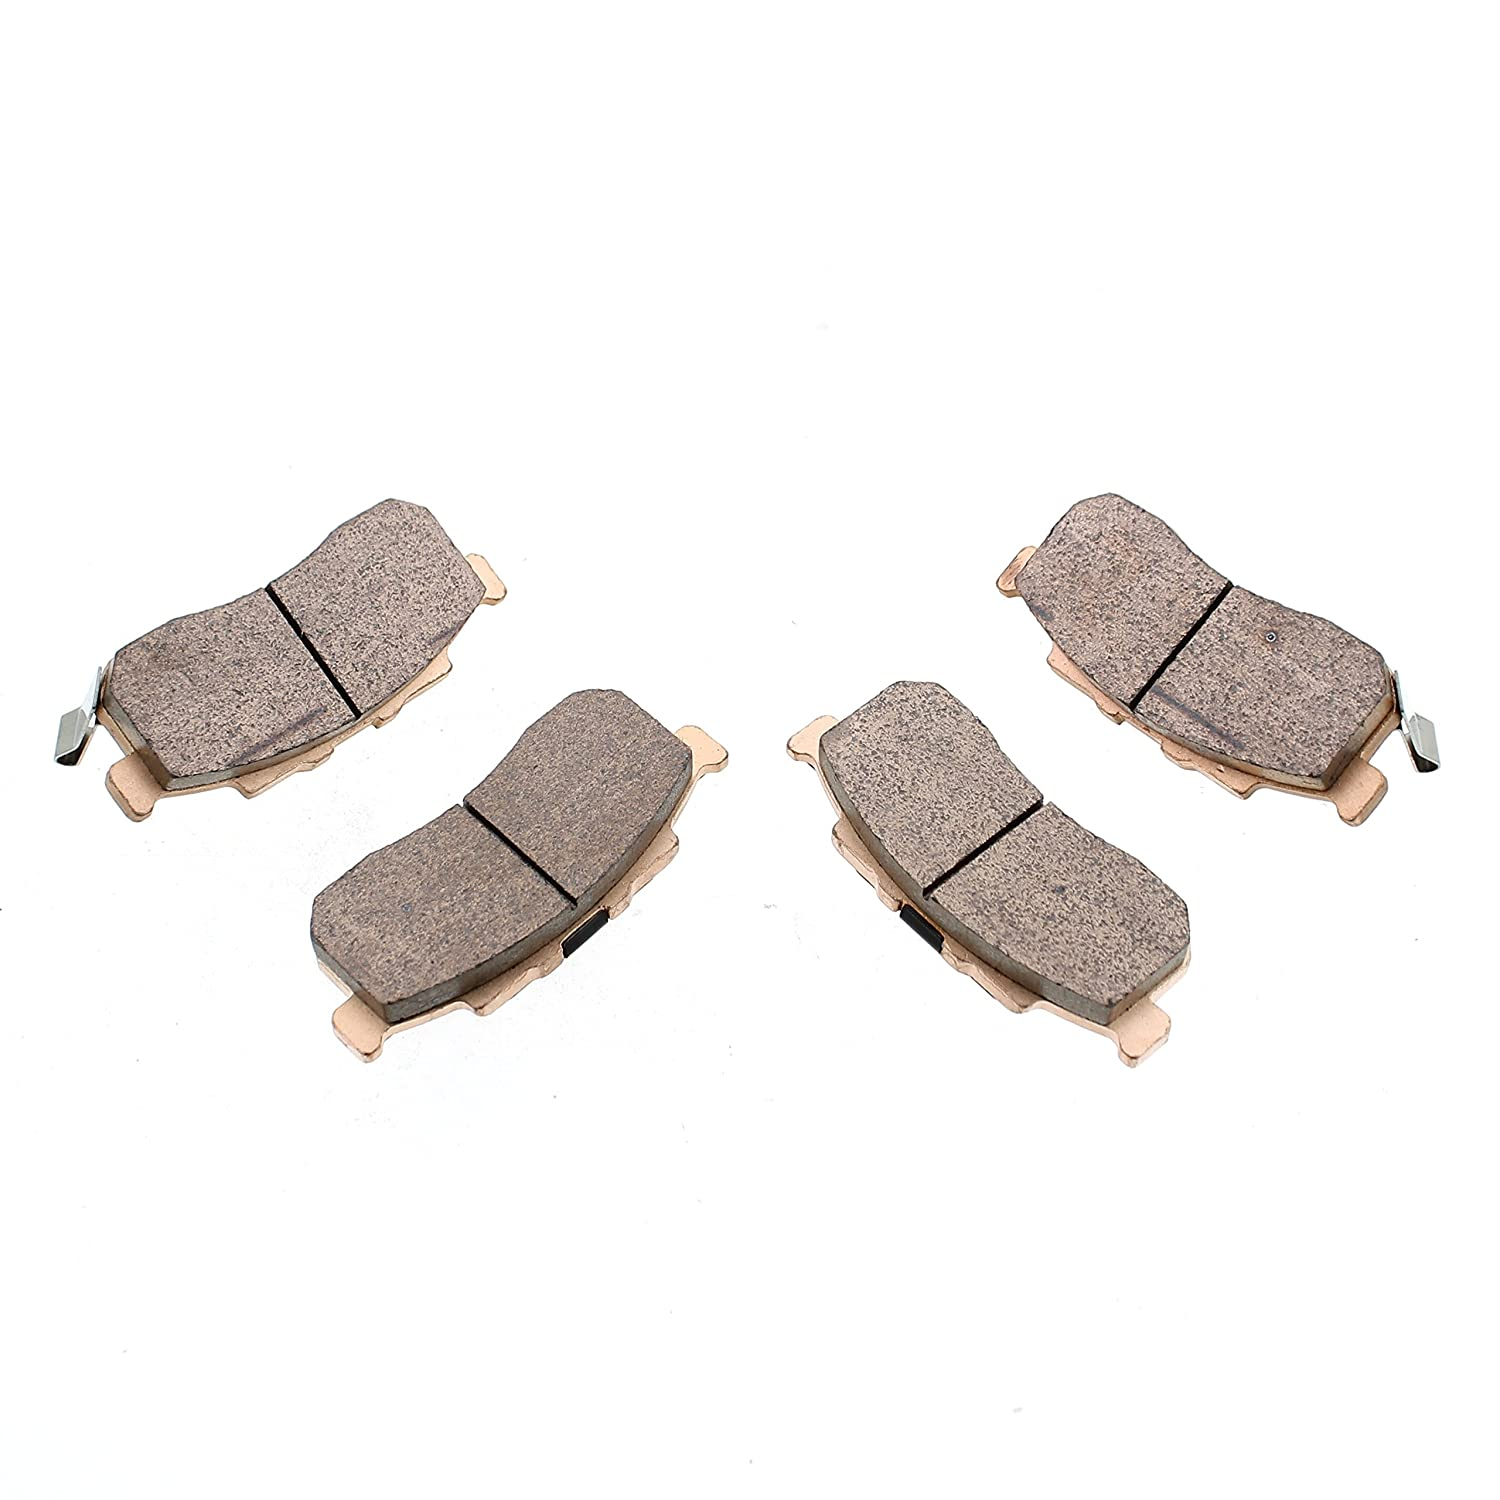 Brake Pads fits Honda Pioneer 500 SXS500 2015-2017 Front Severe Duty Race-Driven